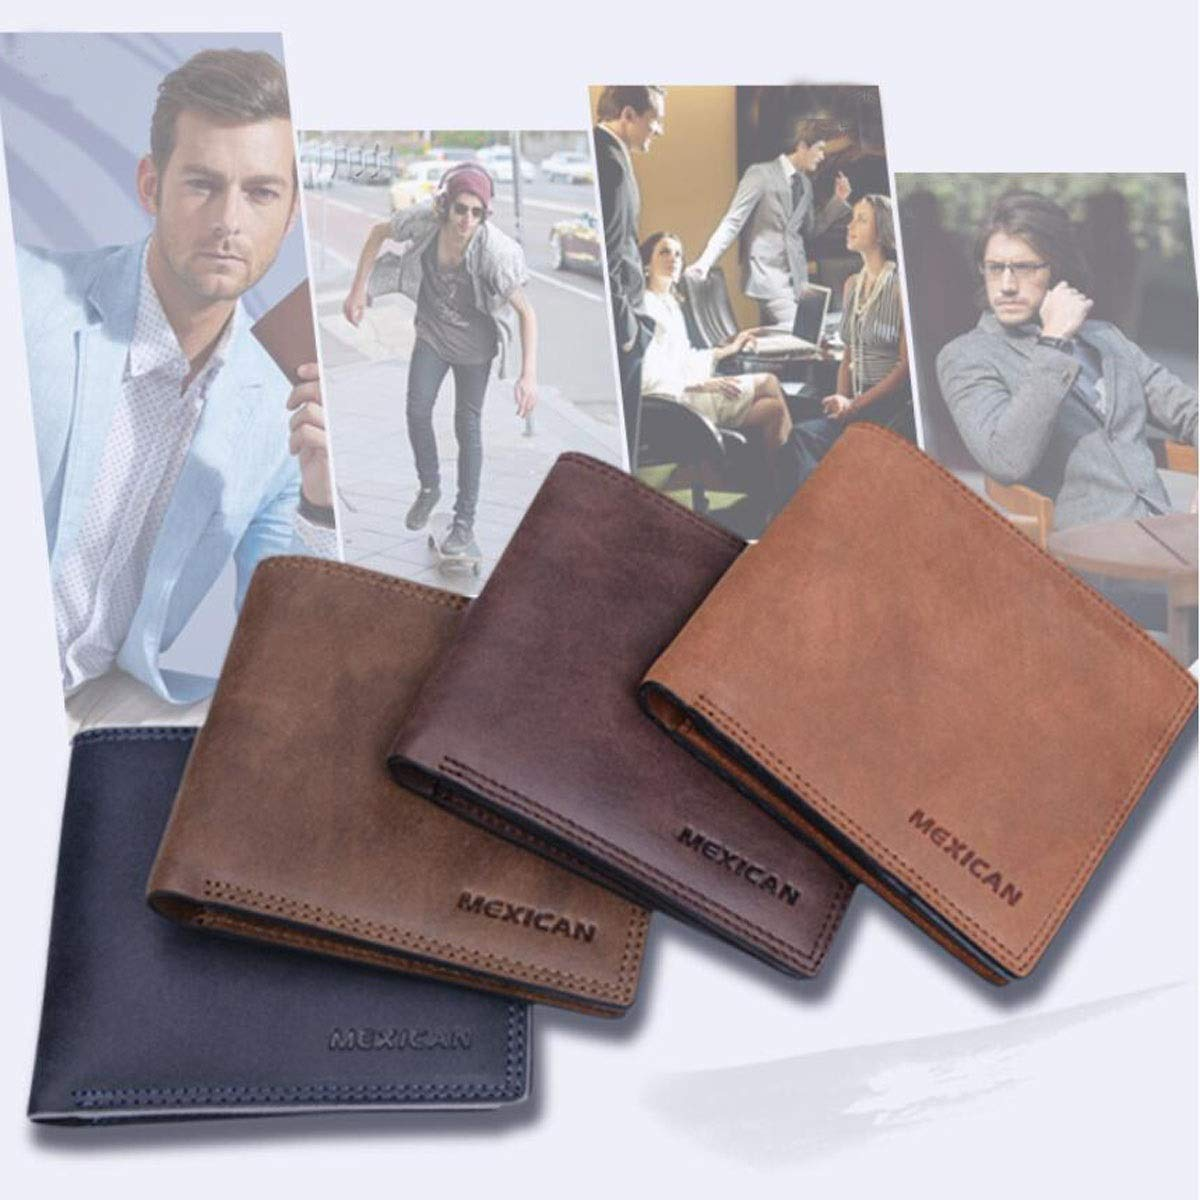 11.5 1.5 9 Blue Color cm Stealth Mode Blocking Leather Wallet Suitable for Mens Short Fashion Casual Business Leather Wallet Size, Kalmar RFID Travel Wallet